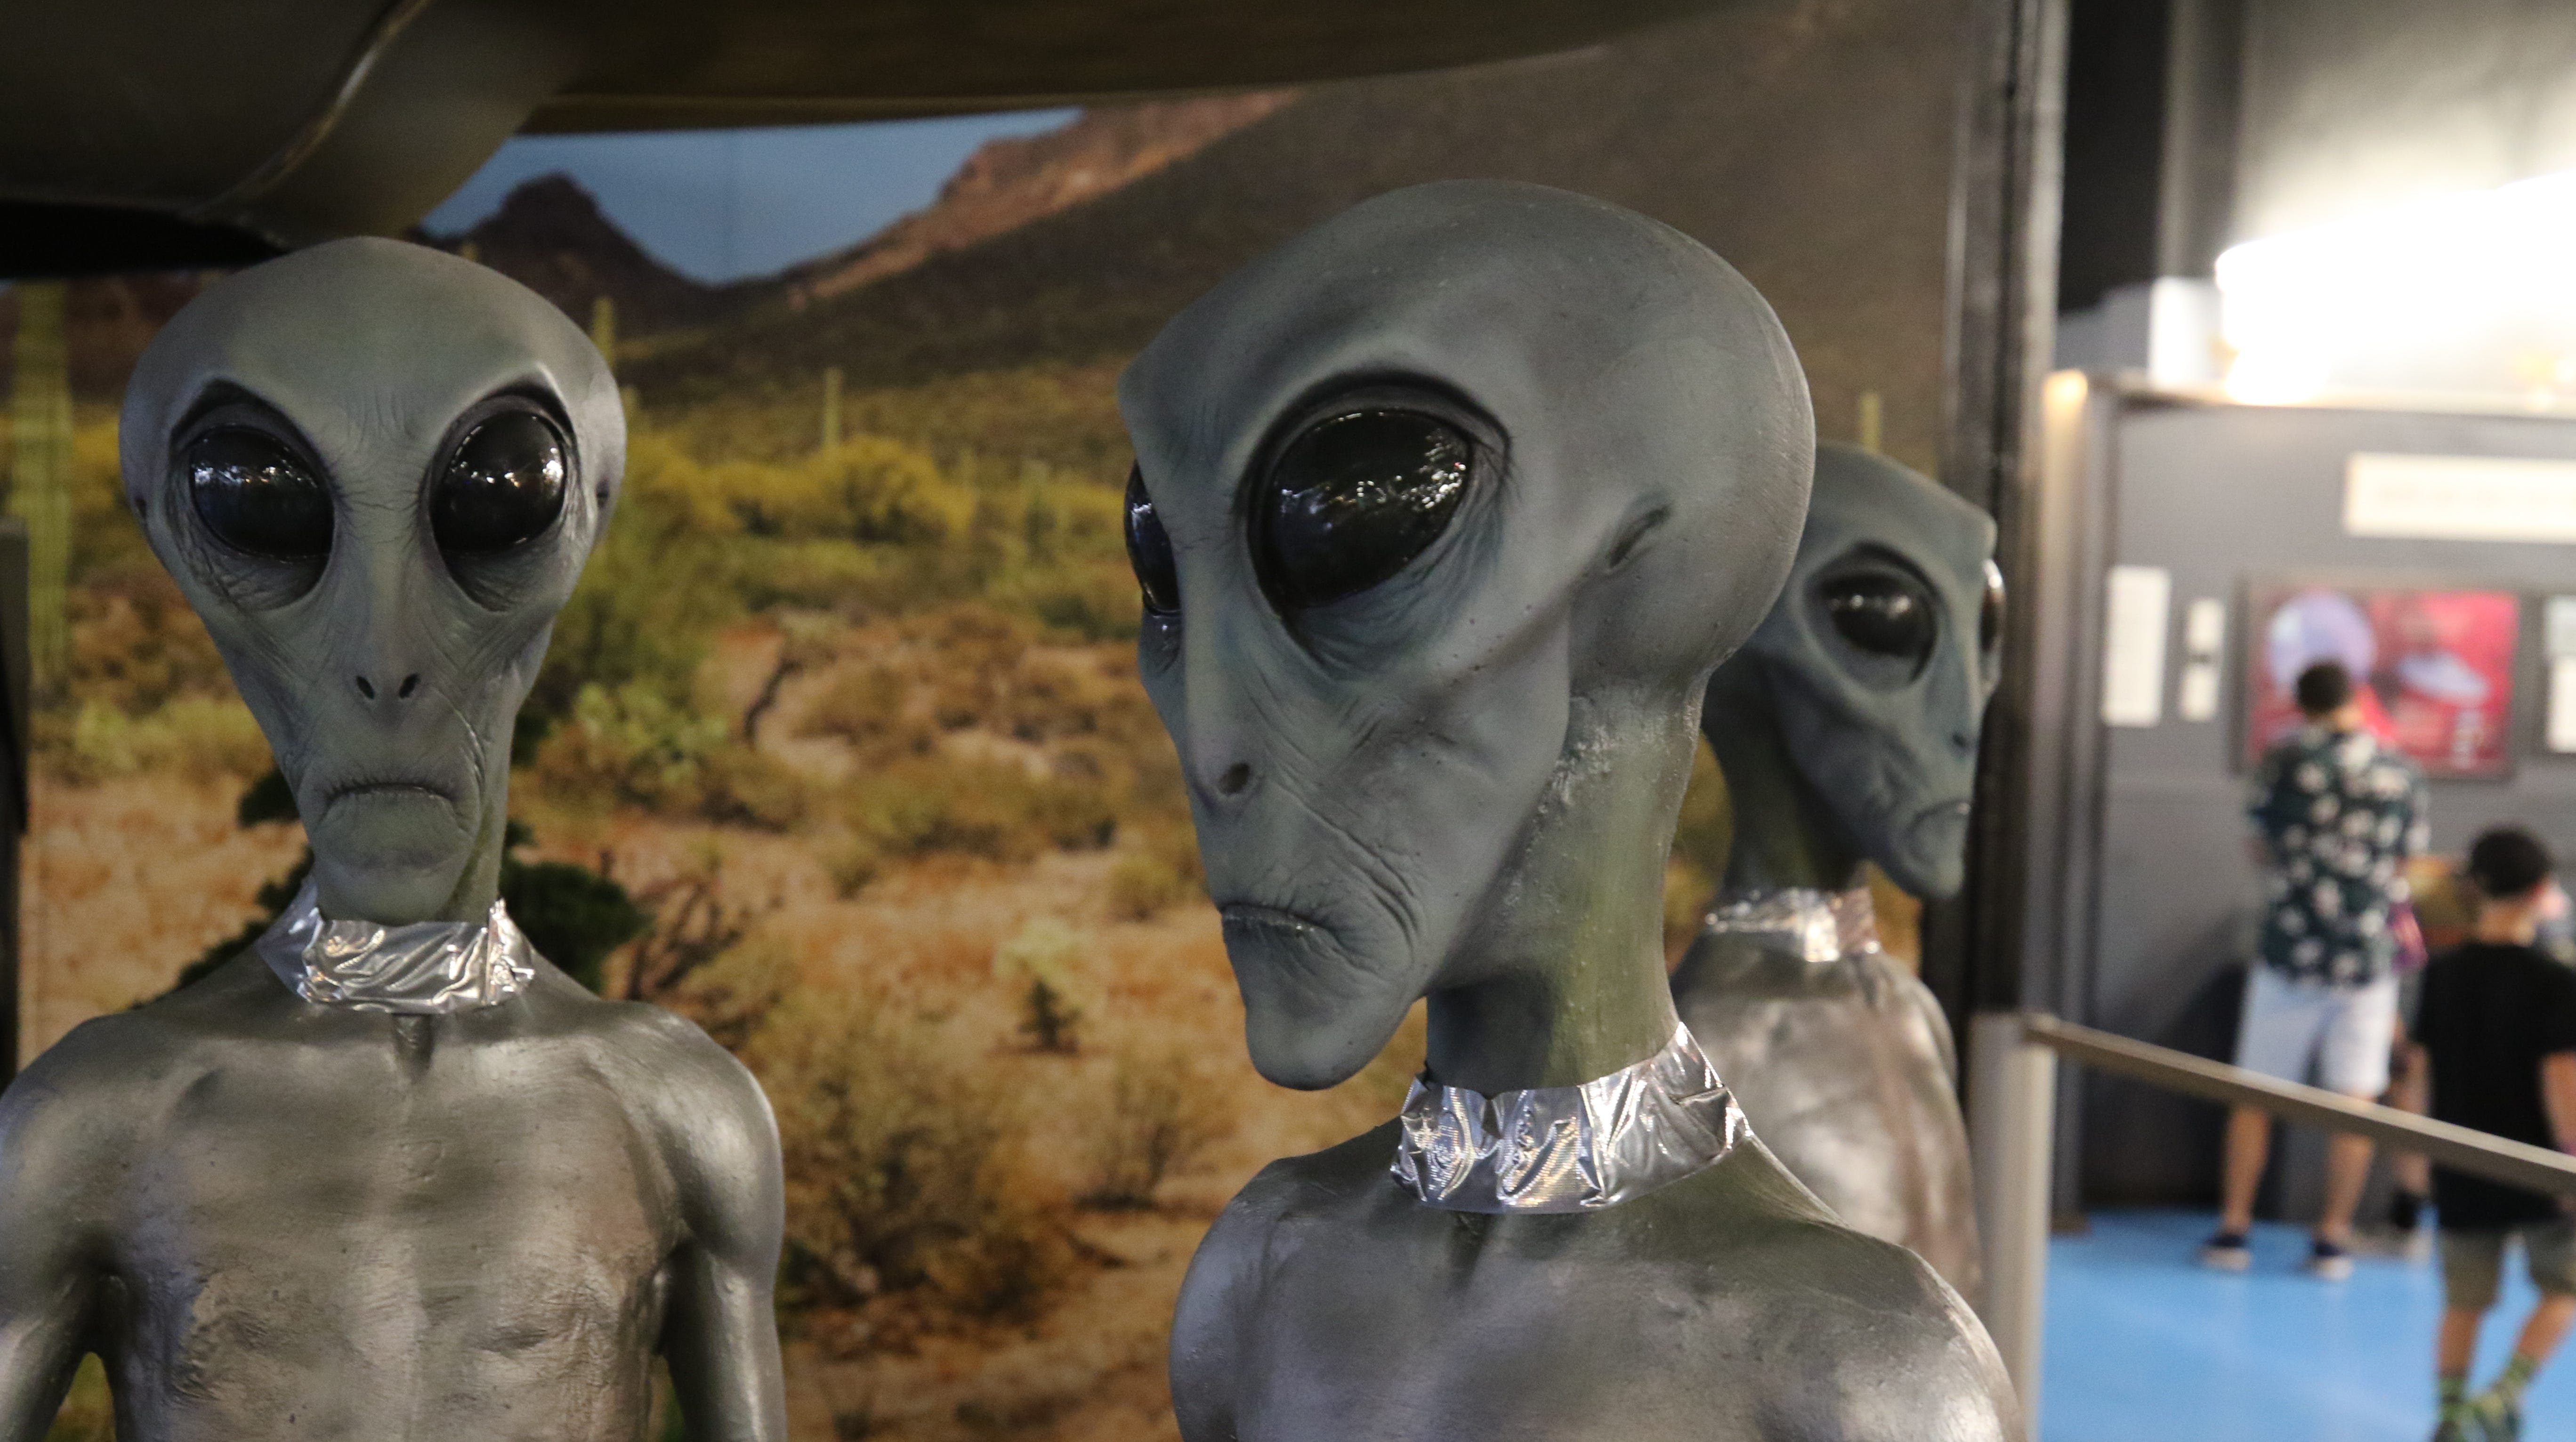 Roswell Alien Who Made Woman Faint Was Patrick Air Force Base Scientist